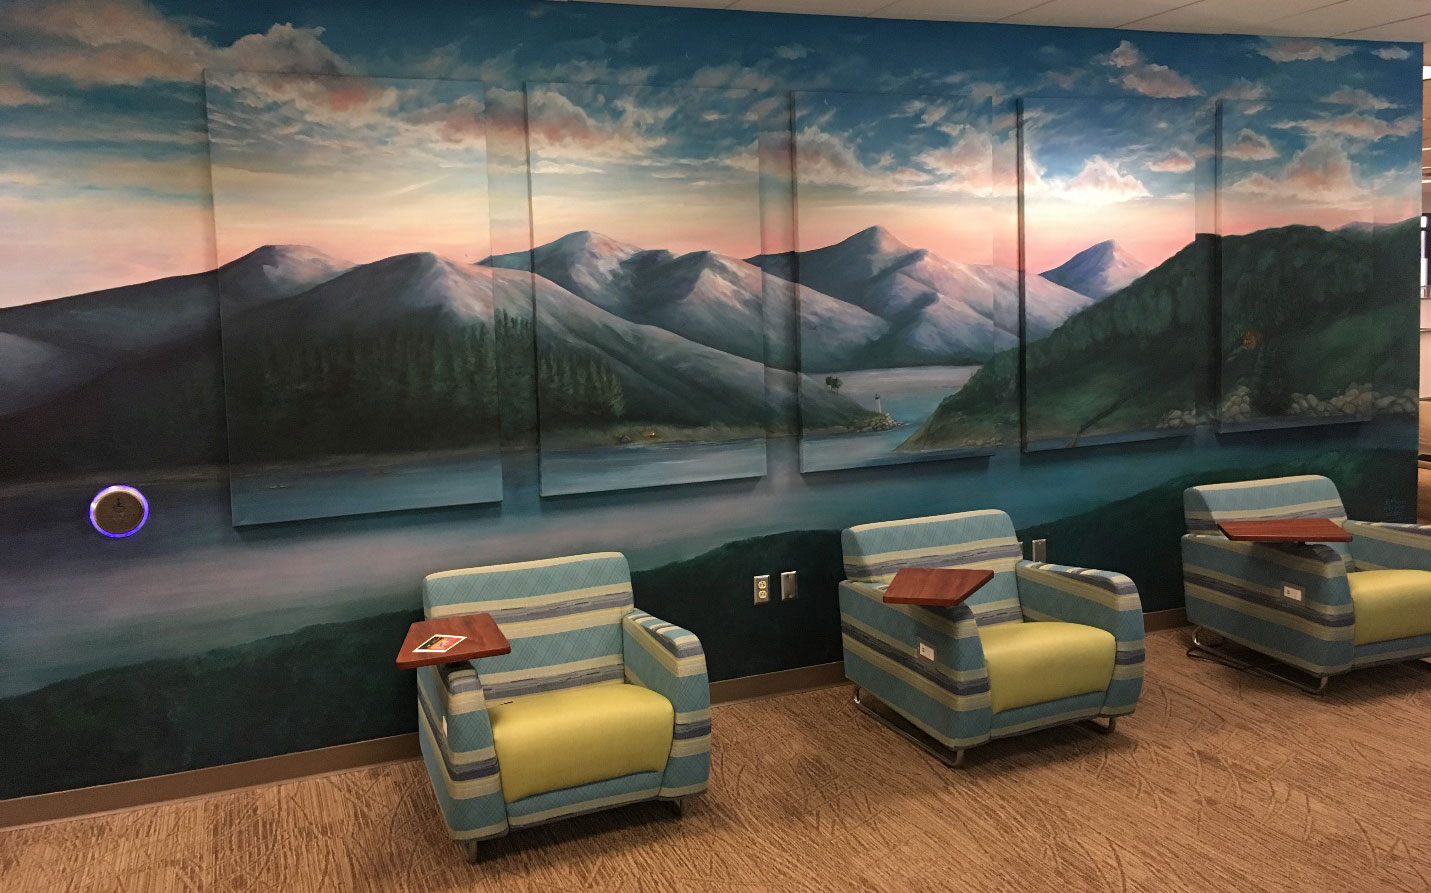 A multi-panel mural depicting mountains with an ocean in front of them and a sky above them is seen in a room with large, comfortable chairs in front of it.